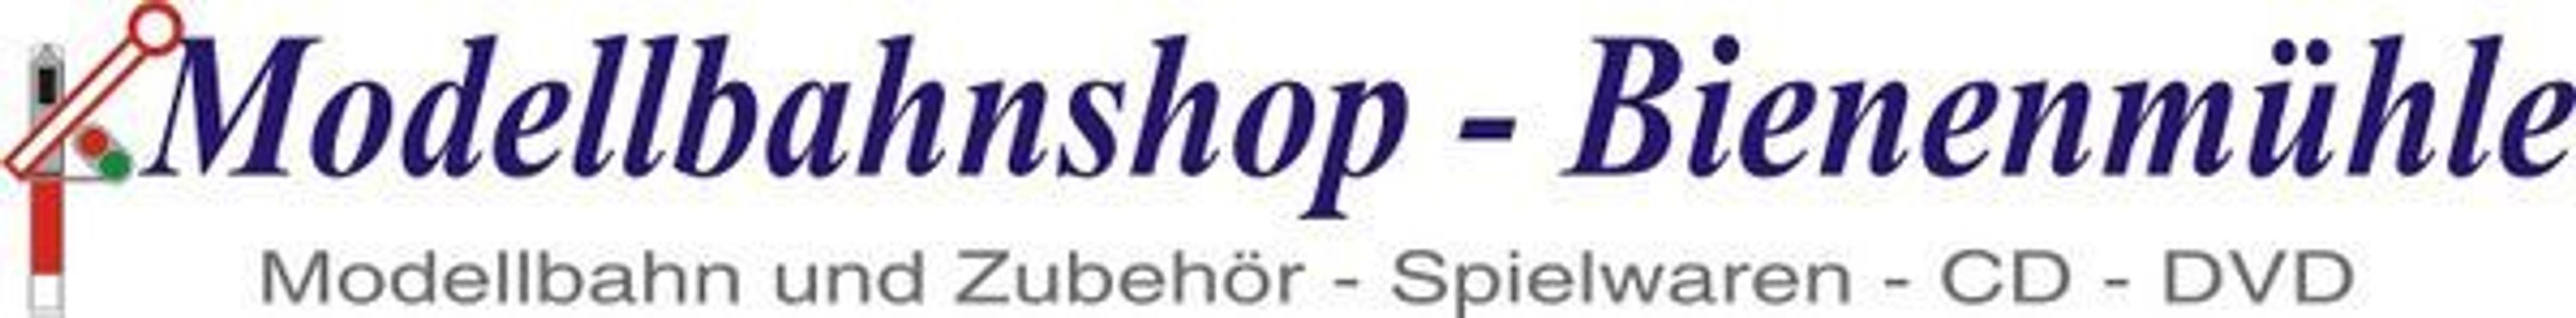 Biemoba-Shop